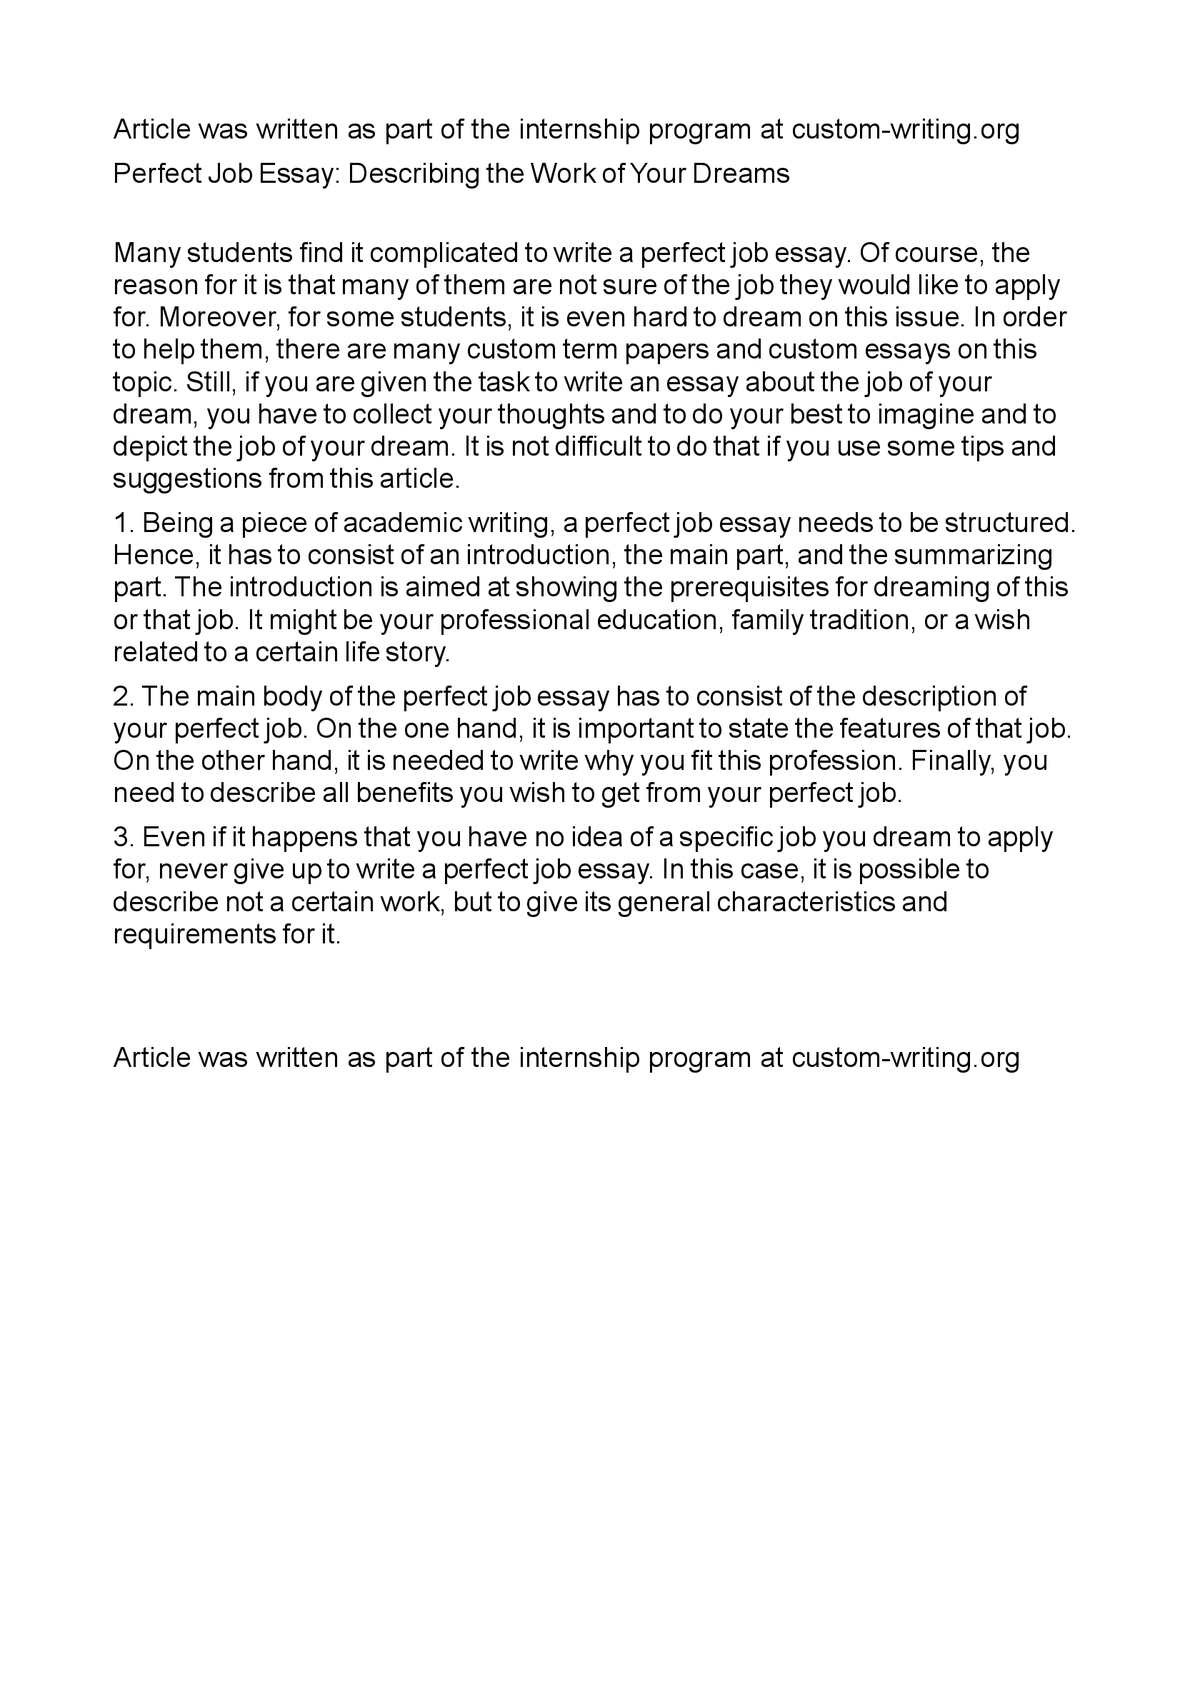 academic writers needed academic writers needed academic writing  calam eacute o perfect job essay describing the work of your dreams academic writing